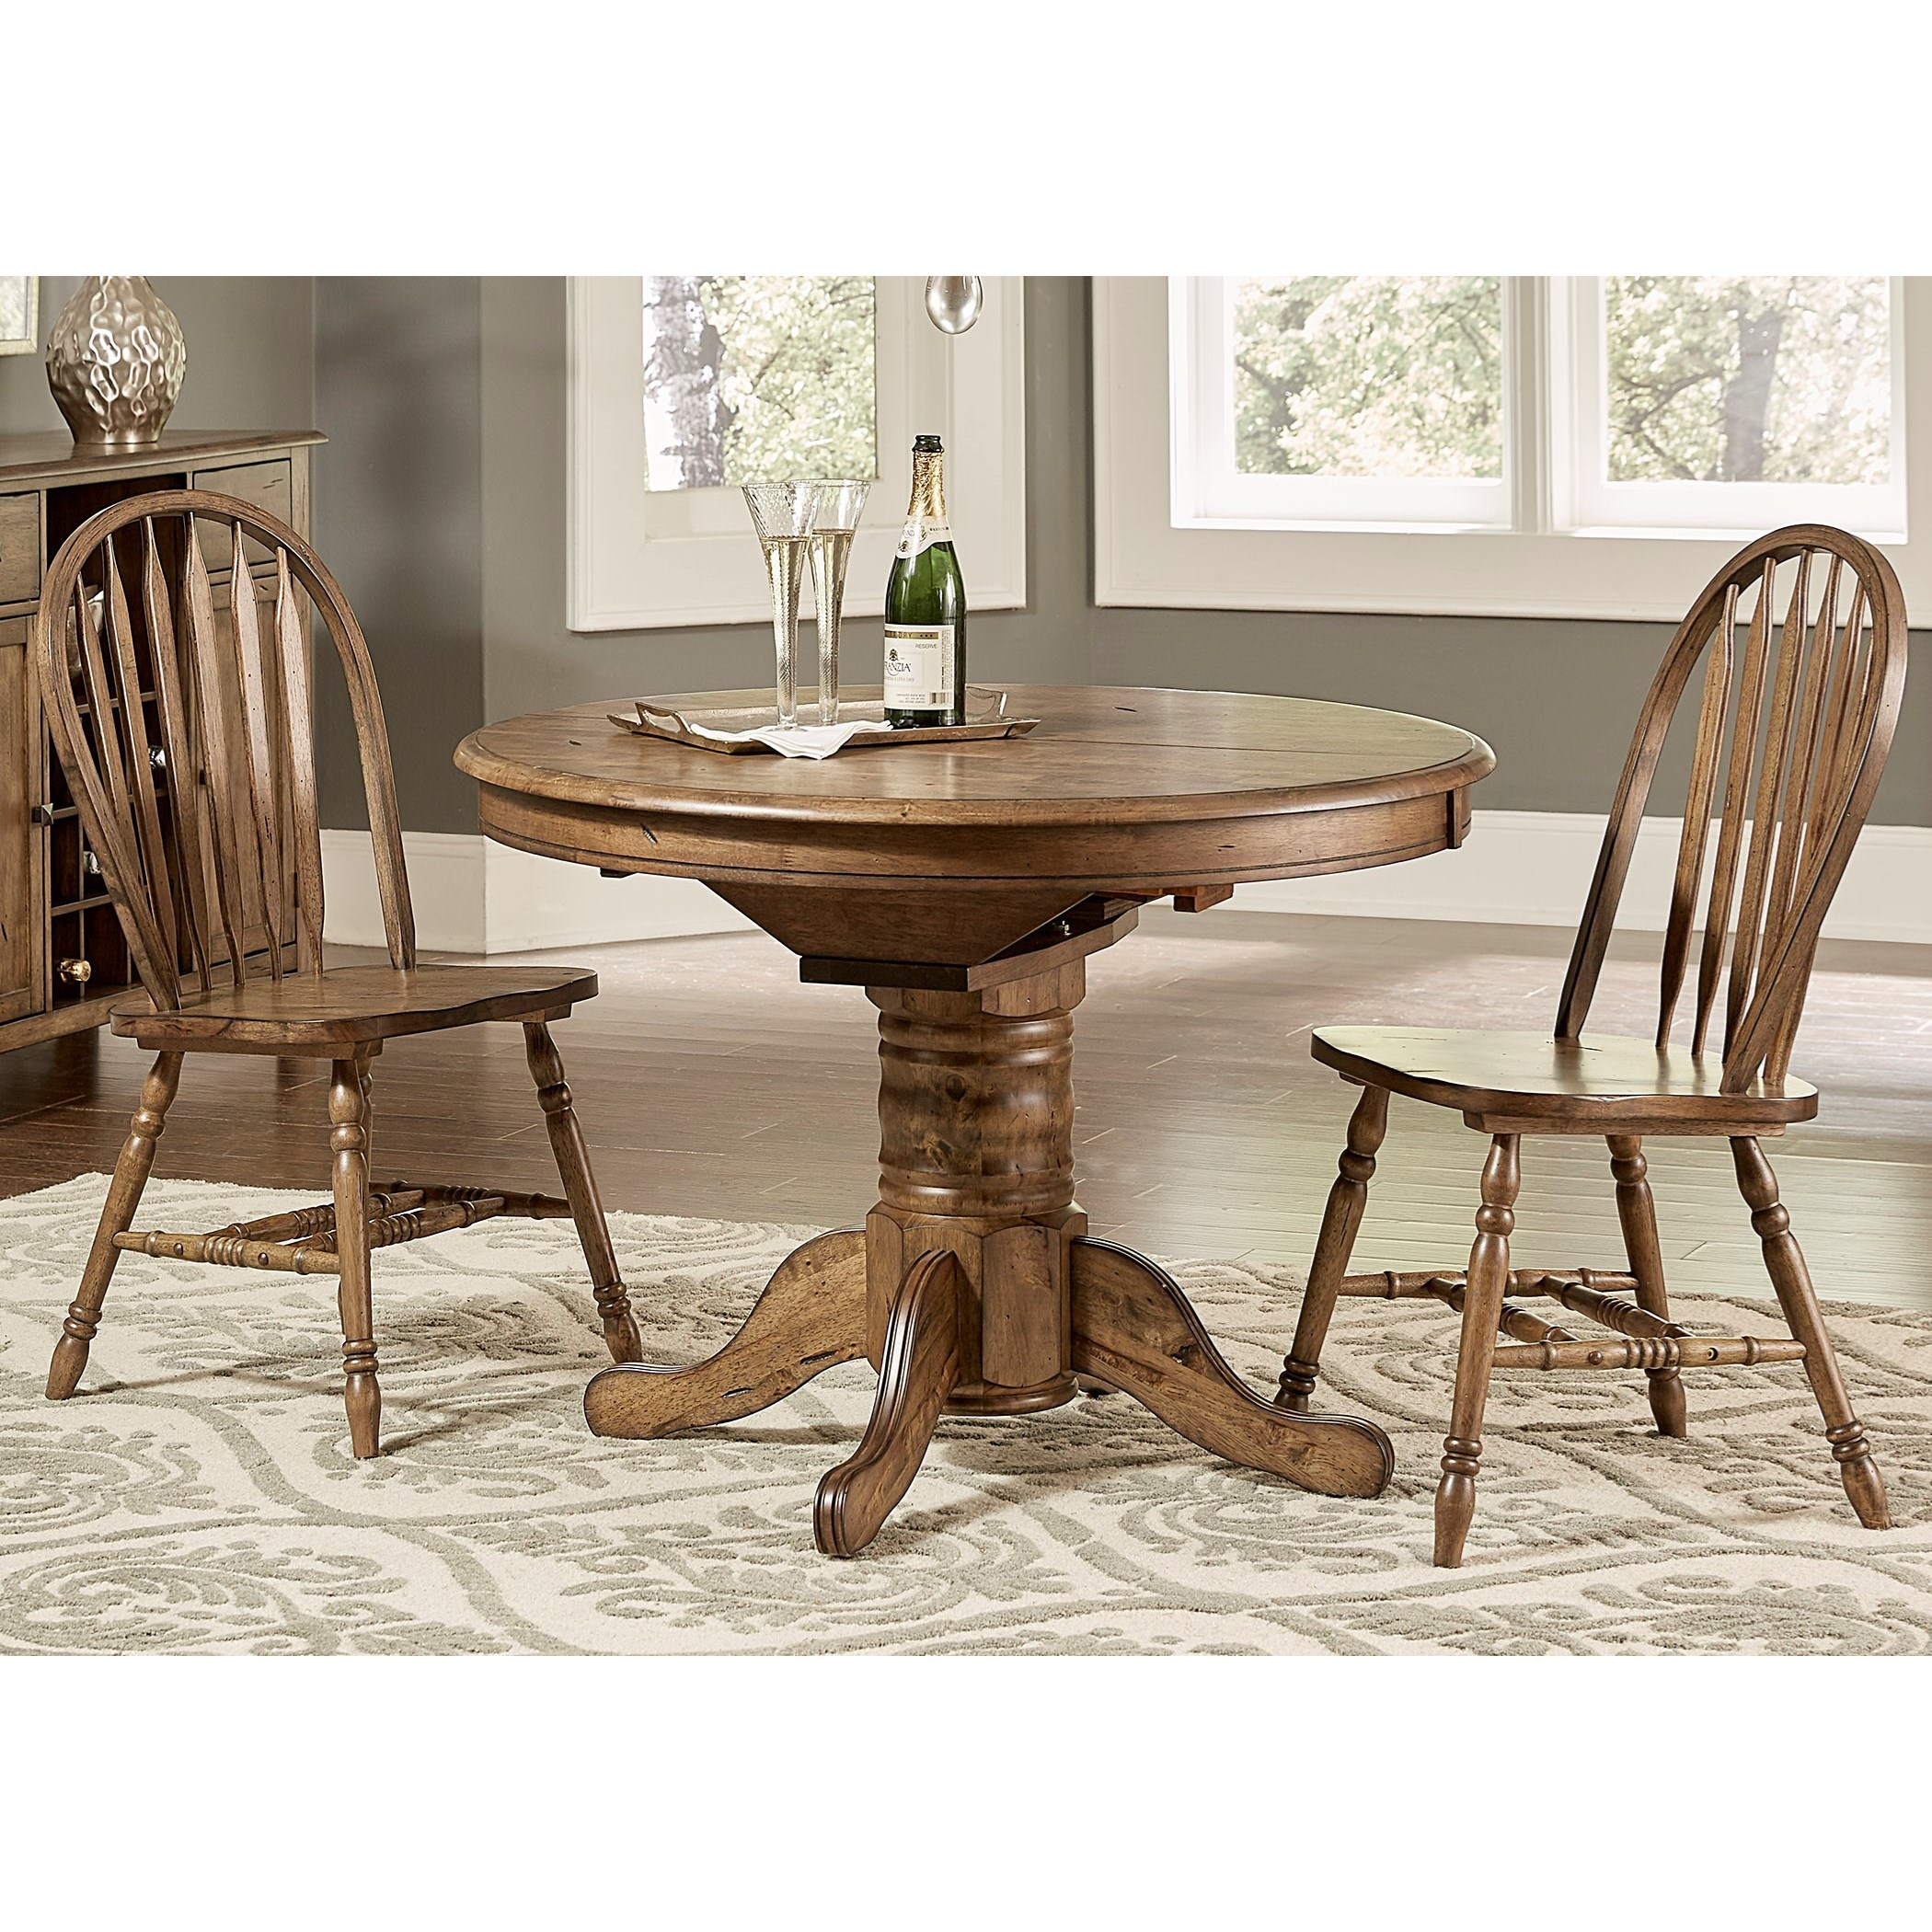 pedestal dining room table with leaf | Transitional Oval Pedestal Dining Table with Table Leaf by ...